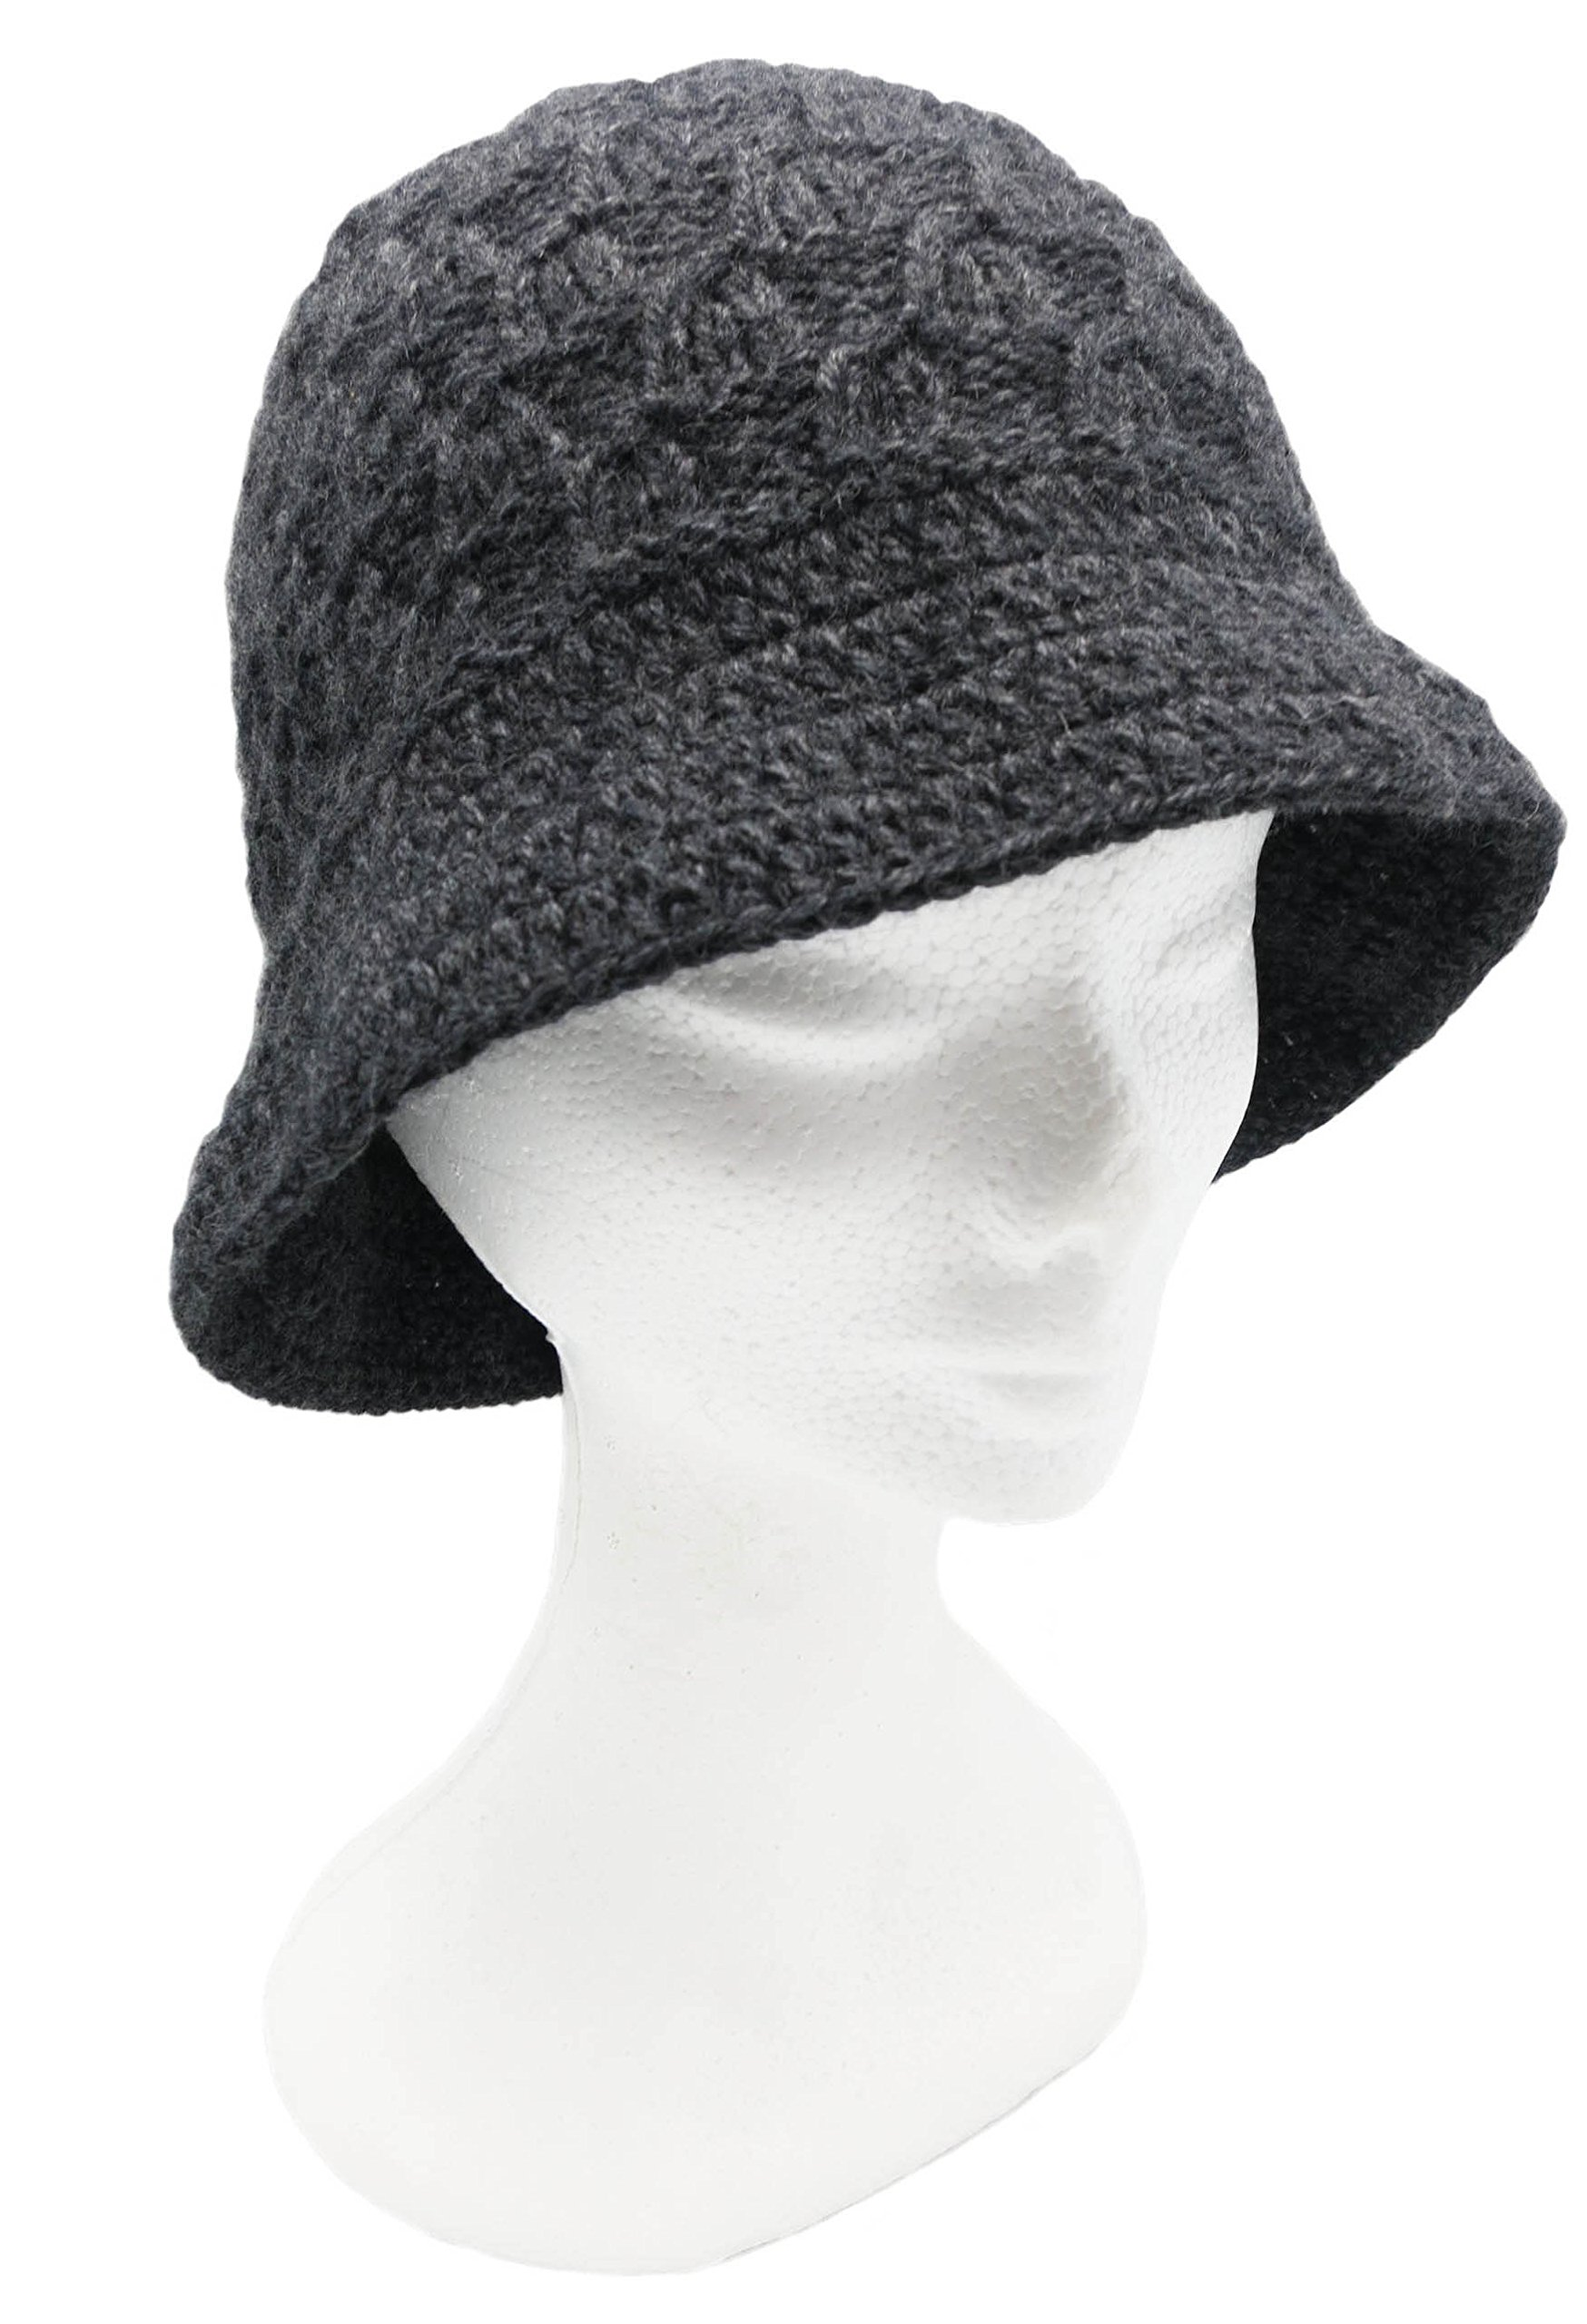 BARBERY Alpaca Accessories Custom Made Order In any Color - Vintage Inspired Knitted Alpaca Hat - Charcoal by BARBERY Alpaca Accessories